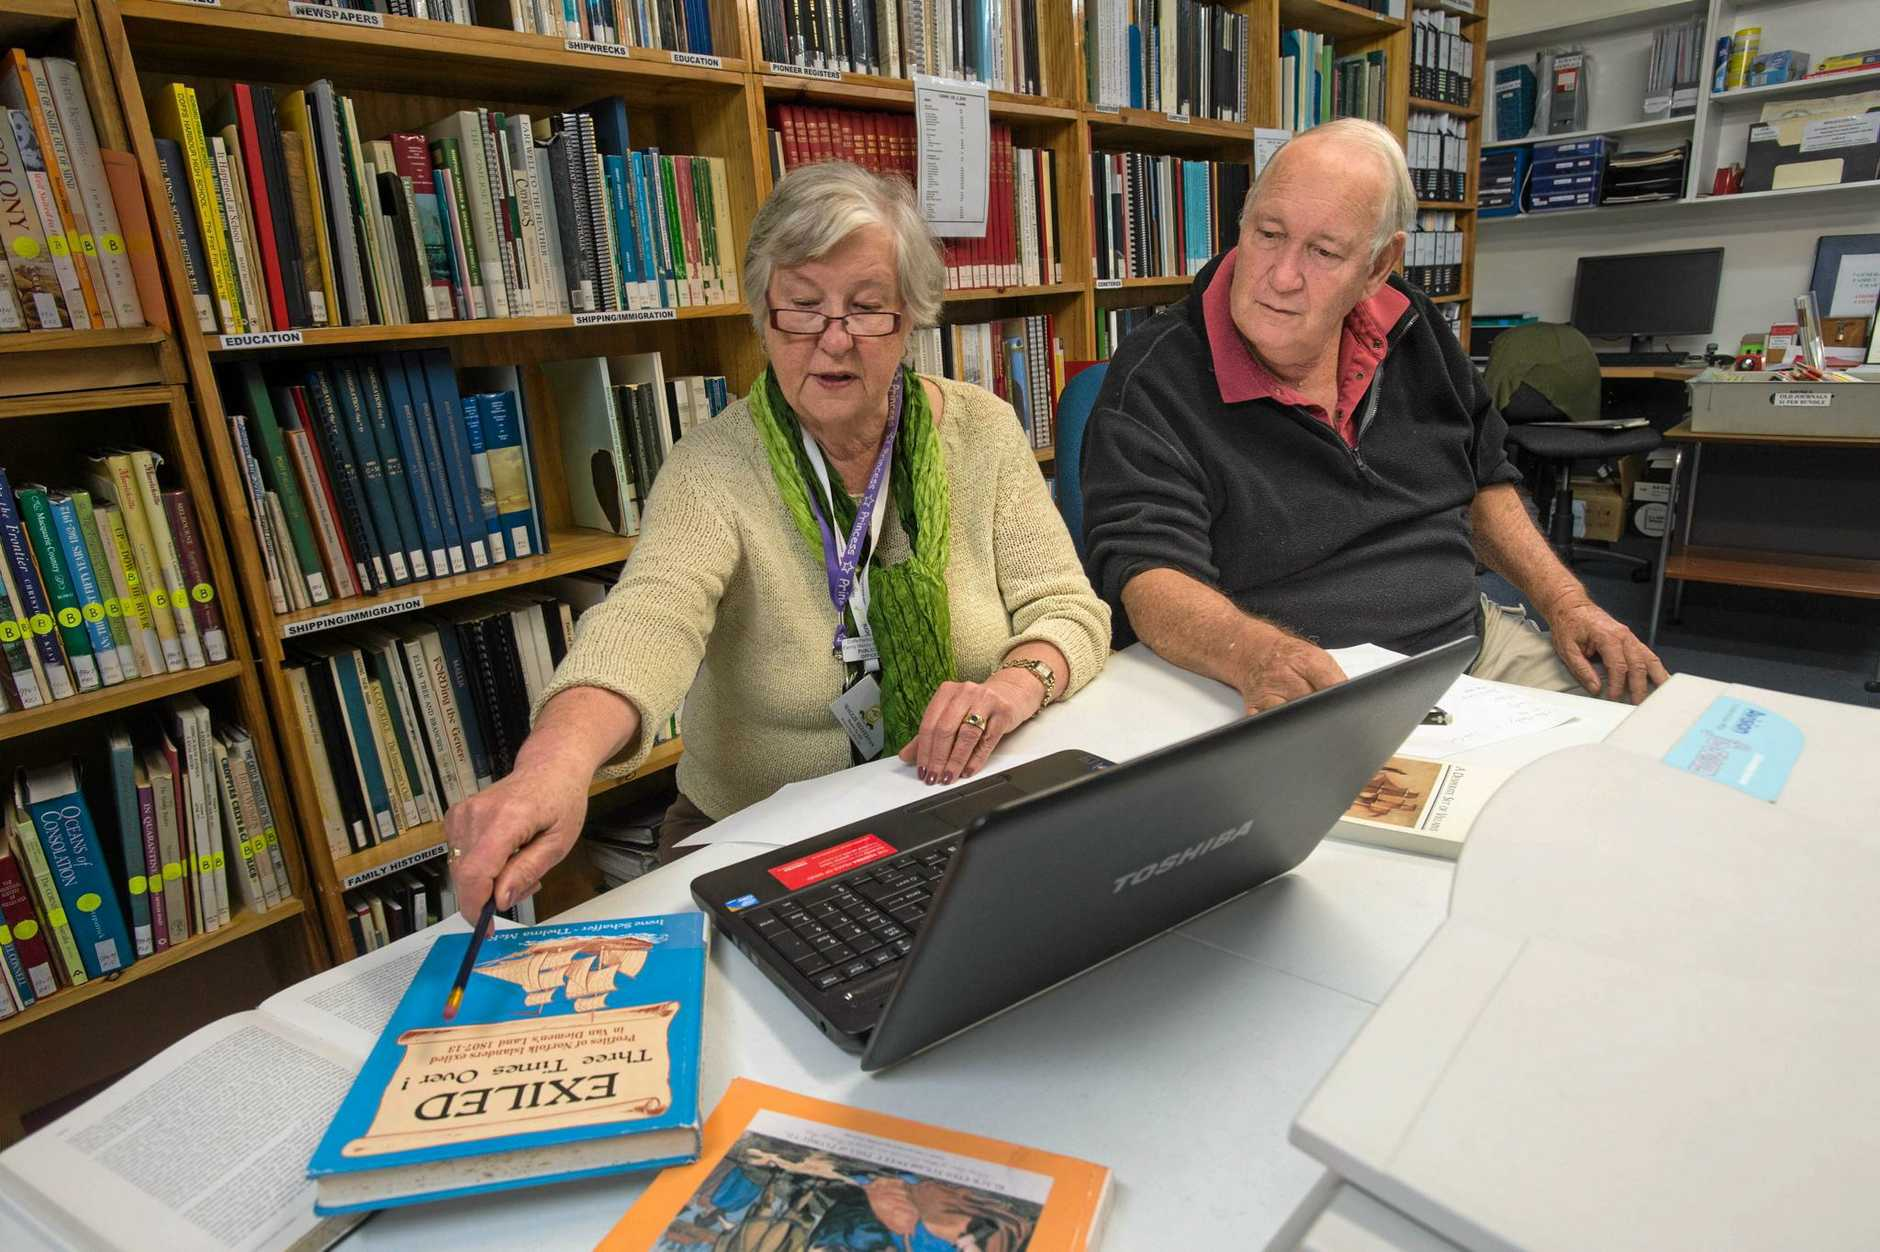 LOOKING BACK: Family history researchers Maggie Heffernan and Bill Buckler busy cross referencing.